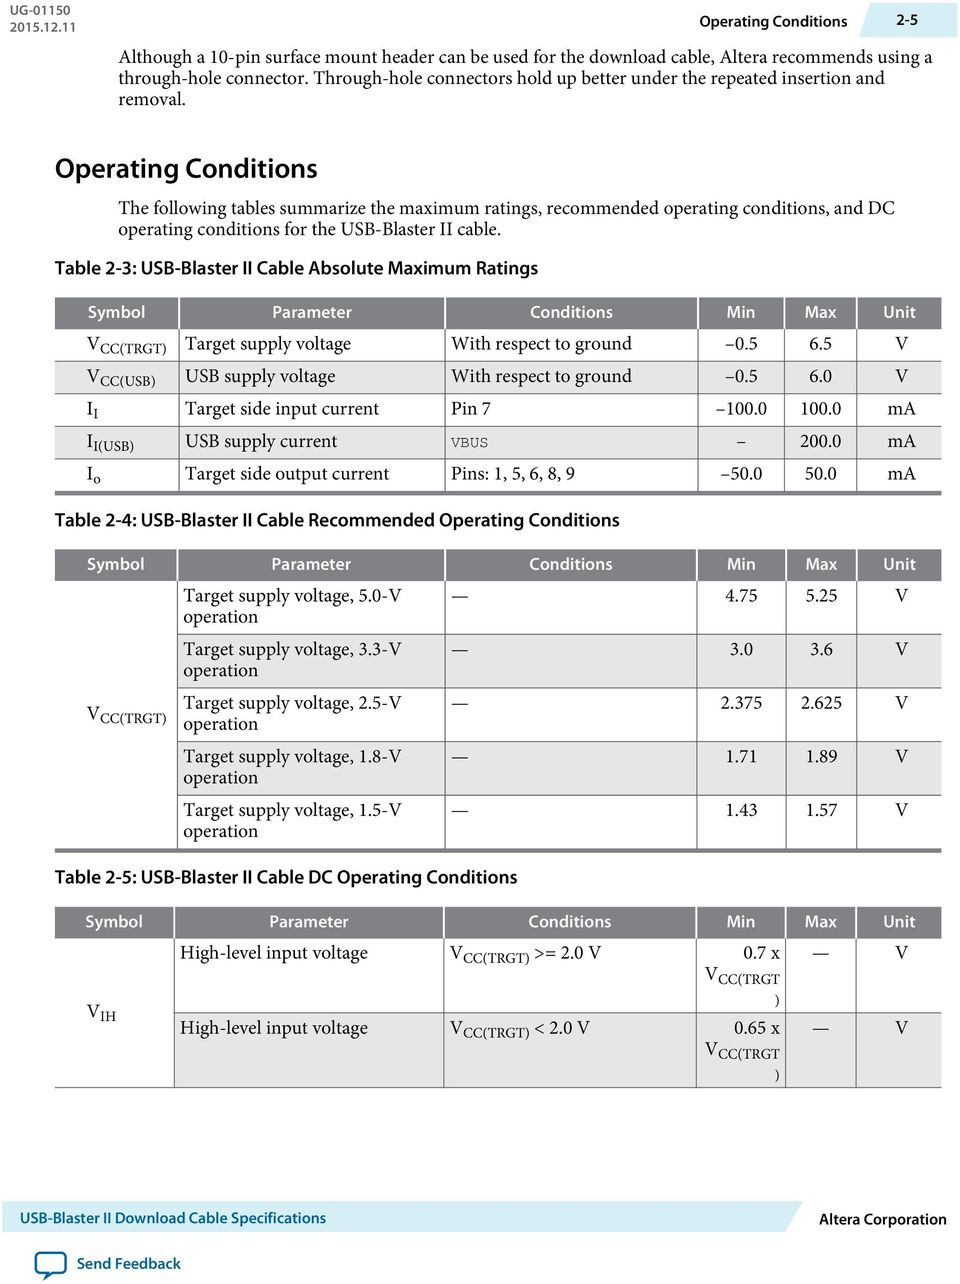 Operating Conditions The following tables summarize the maximum ratings, recommended operating conditions, and DC operating conditions for the USB-Blaster II cable.